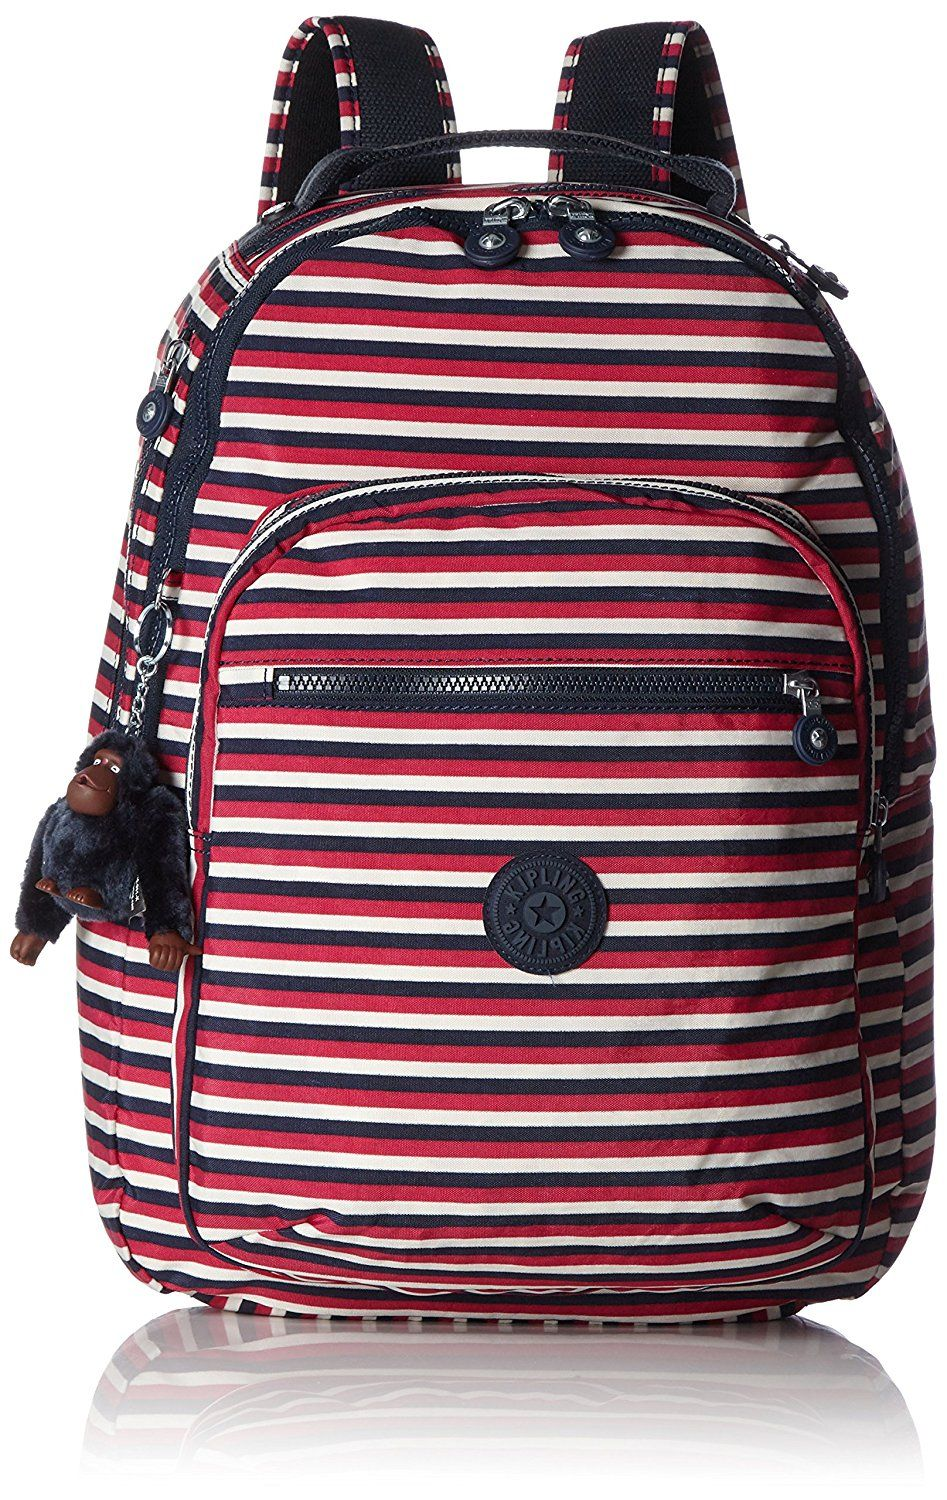 12e1fa2a94 Kipling - CLAS SEOUL - Large Backpack - Sugar Stripes - (Print):  Amazon.co.uk: Luggage